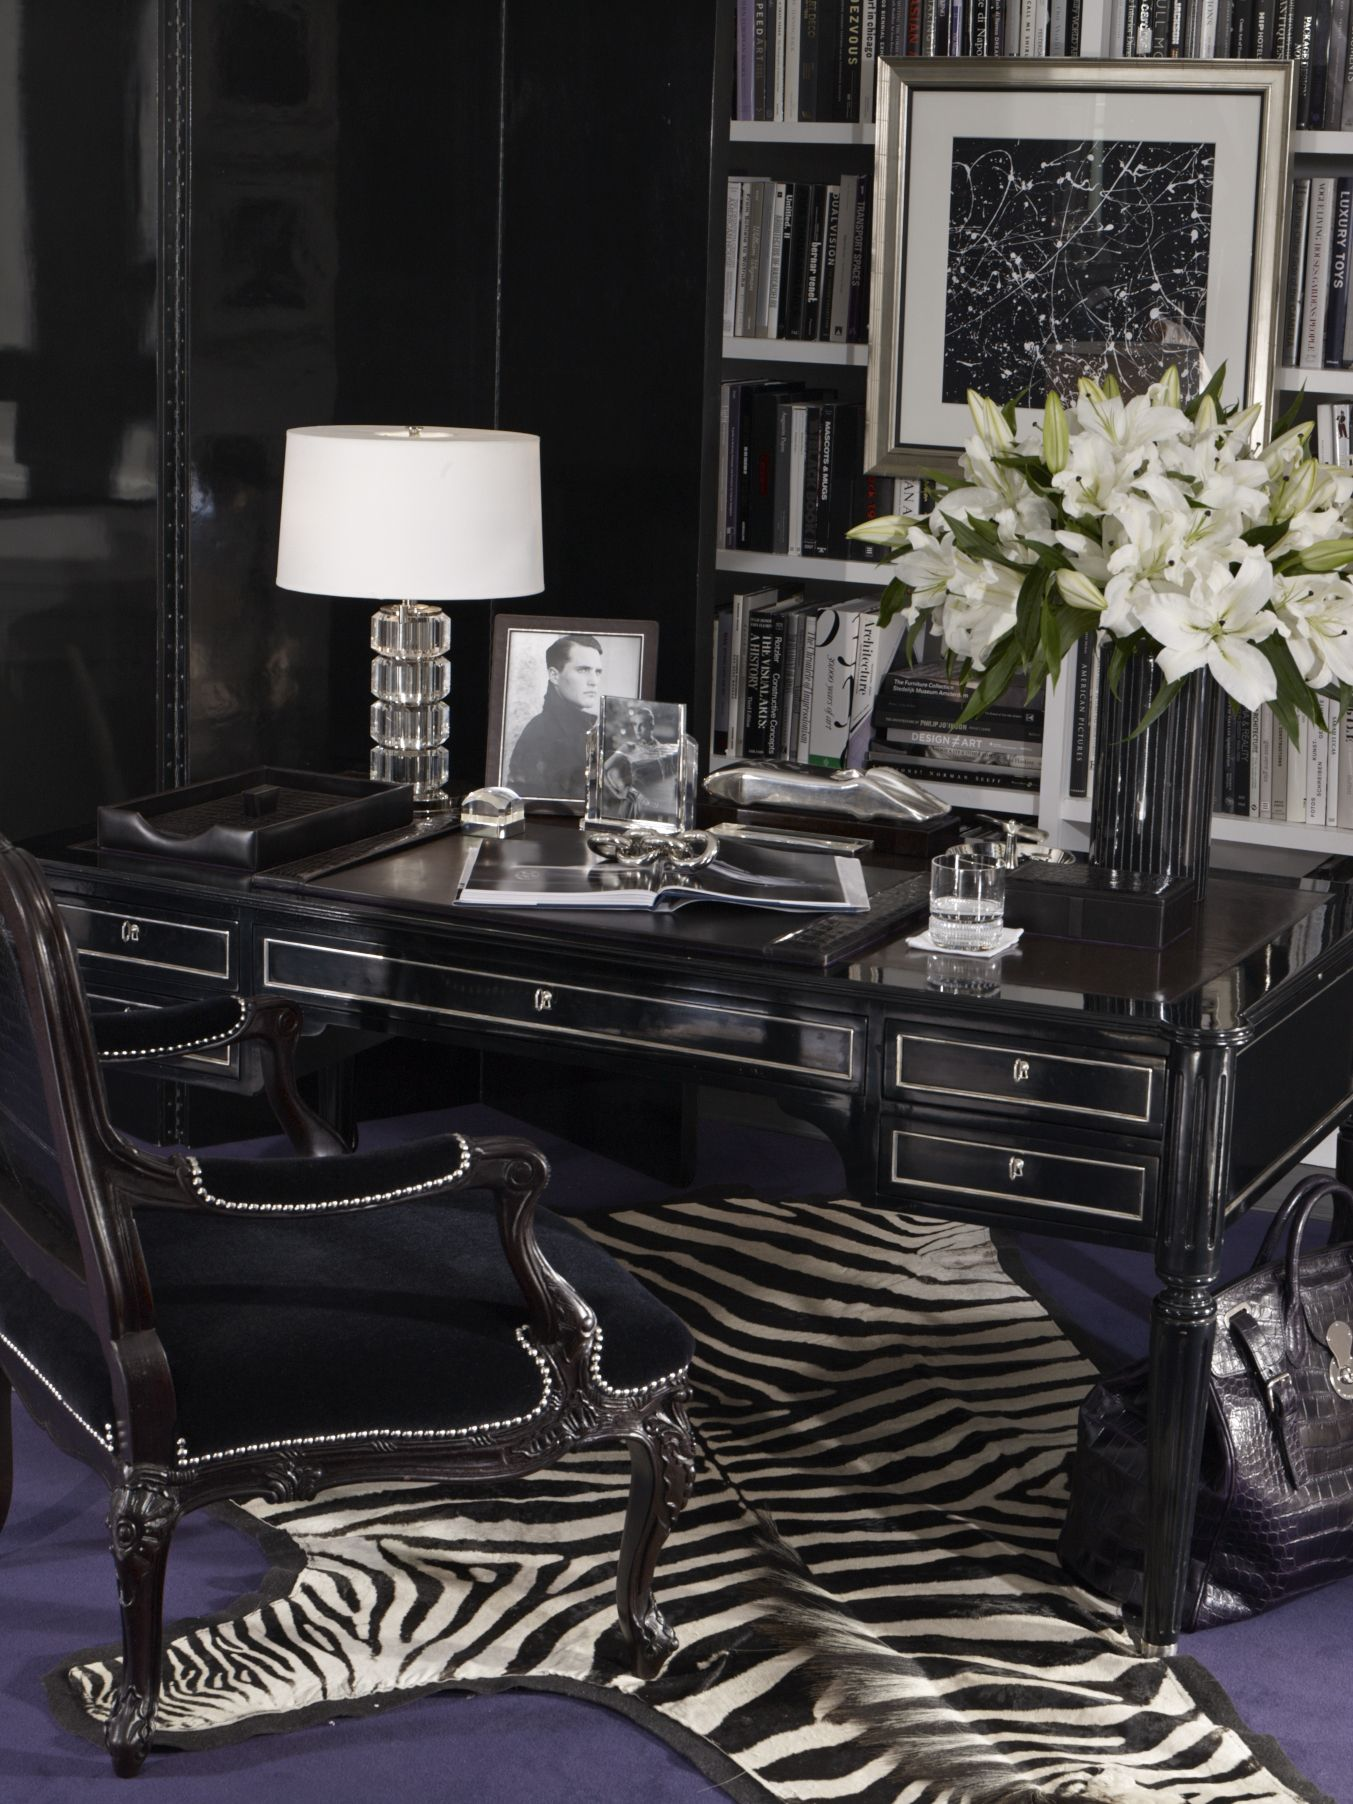 A Sharp Home Office From Ralph Lauren Home A Collection Of Masculine Desk Accessories Arranged On Our Brook St Home Office Design Luxury Office Home Furniture